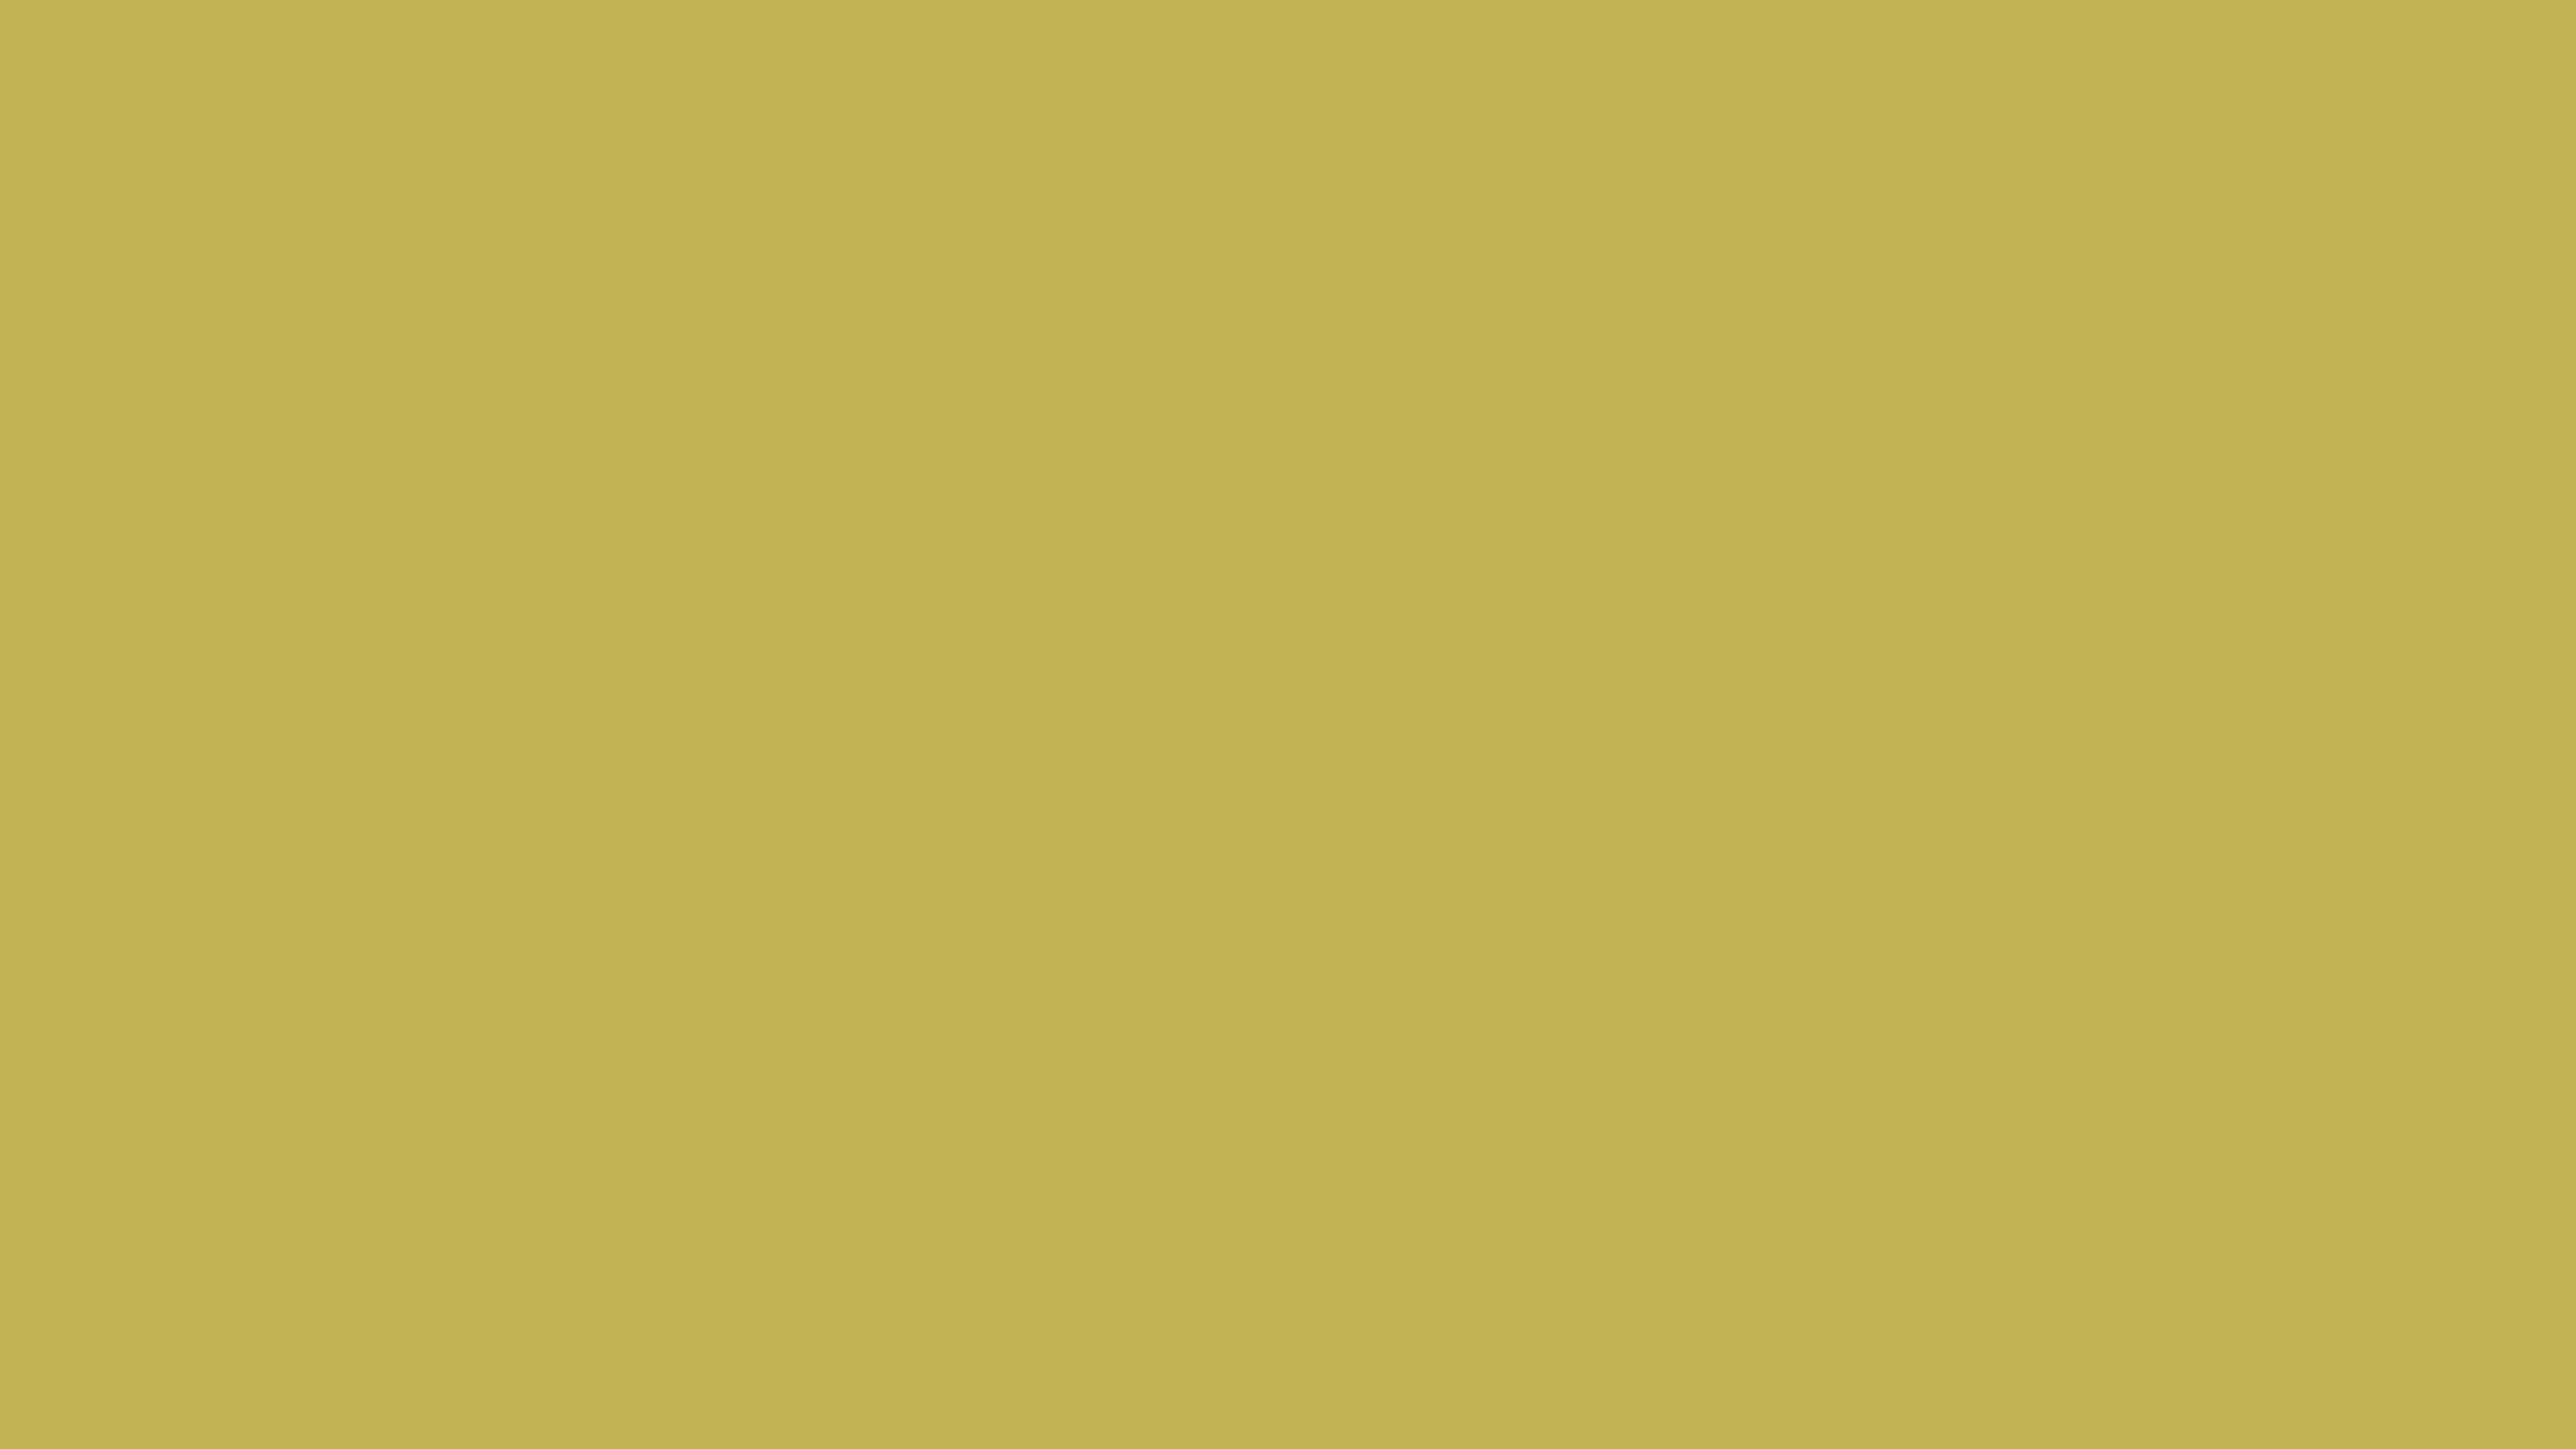 5120x2880 Vegas Gold Solid Color Background